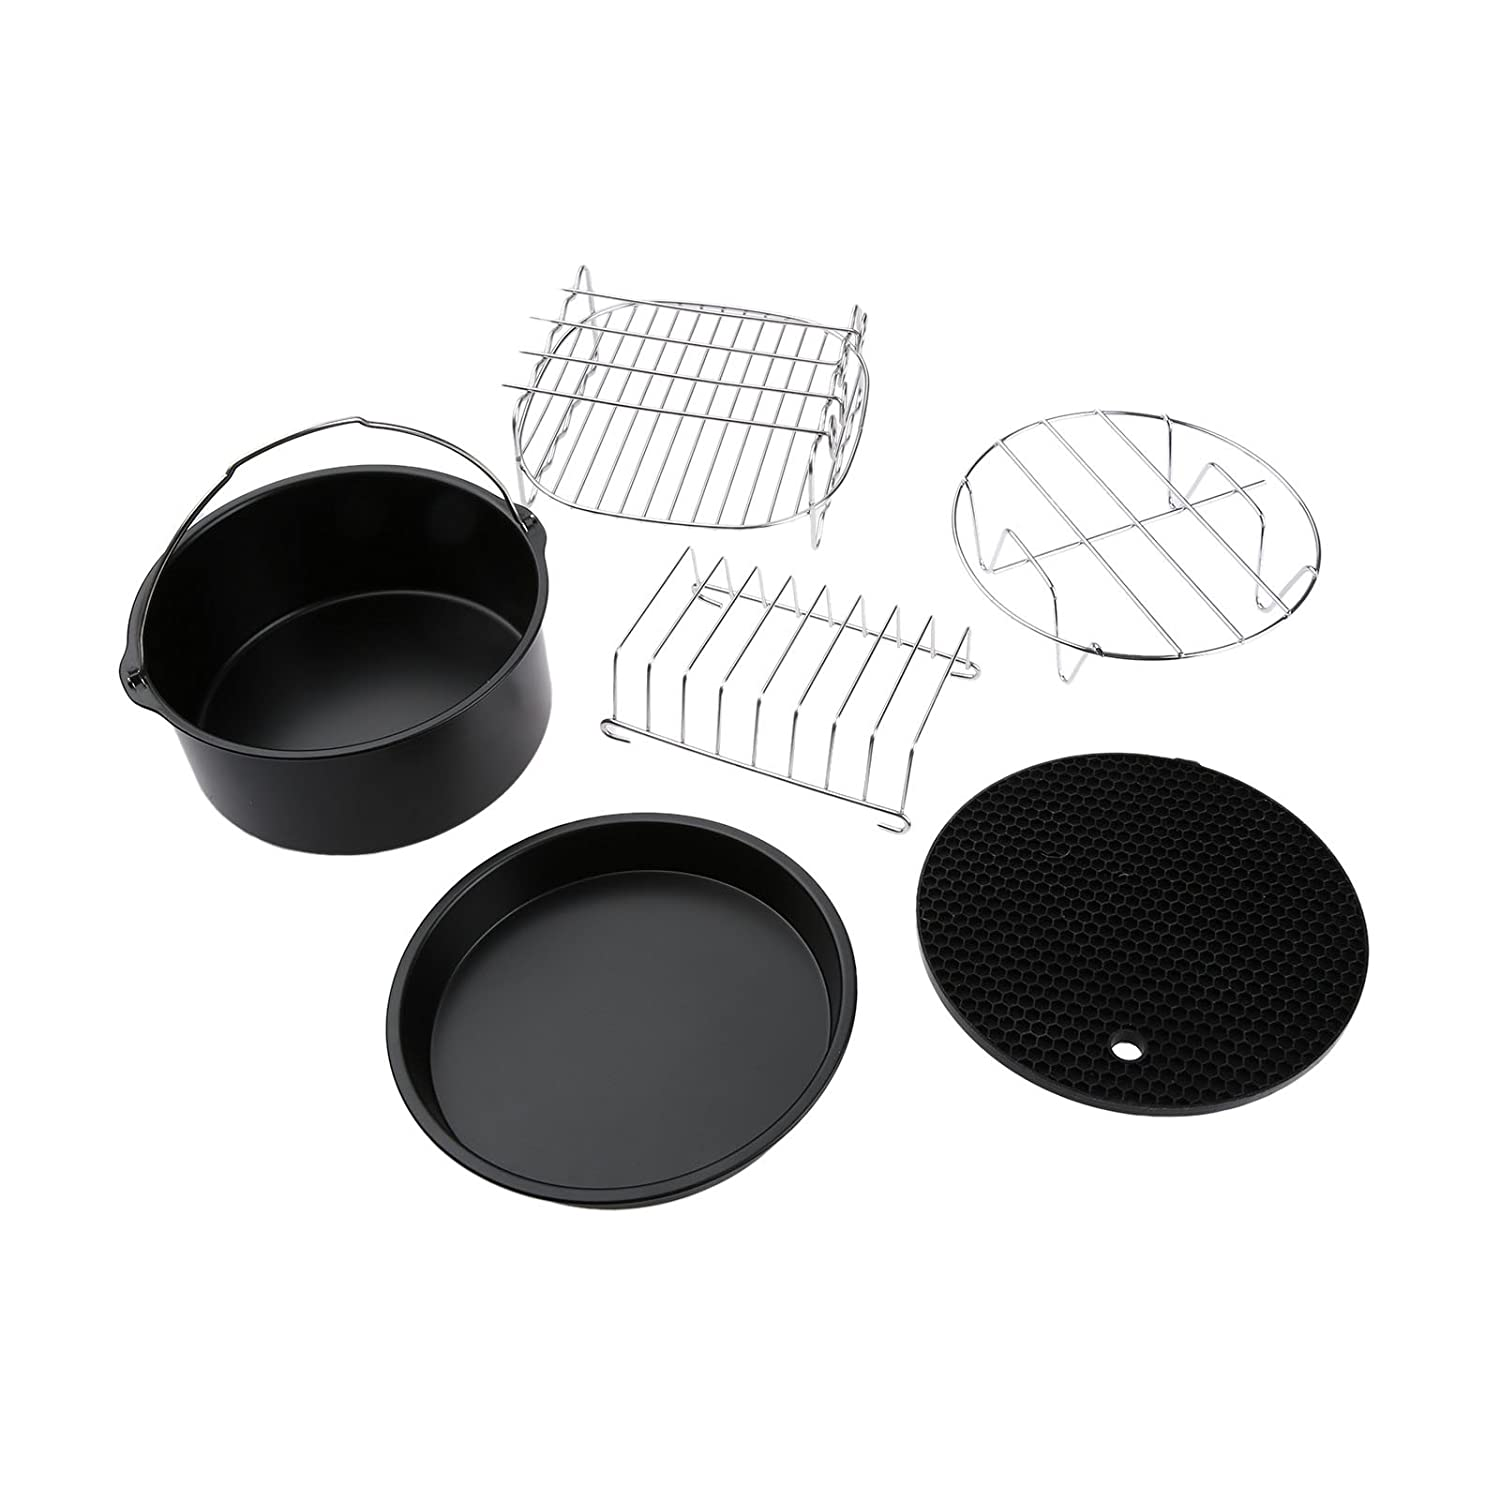 6Pcs Air Fryer Accessories for 3.2-4.5QT Skewer Rack Baking Pizza Pan Holder Yetaha